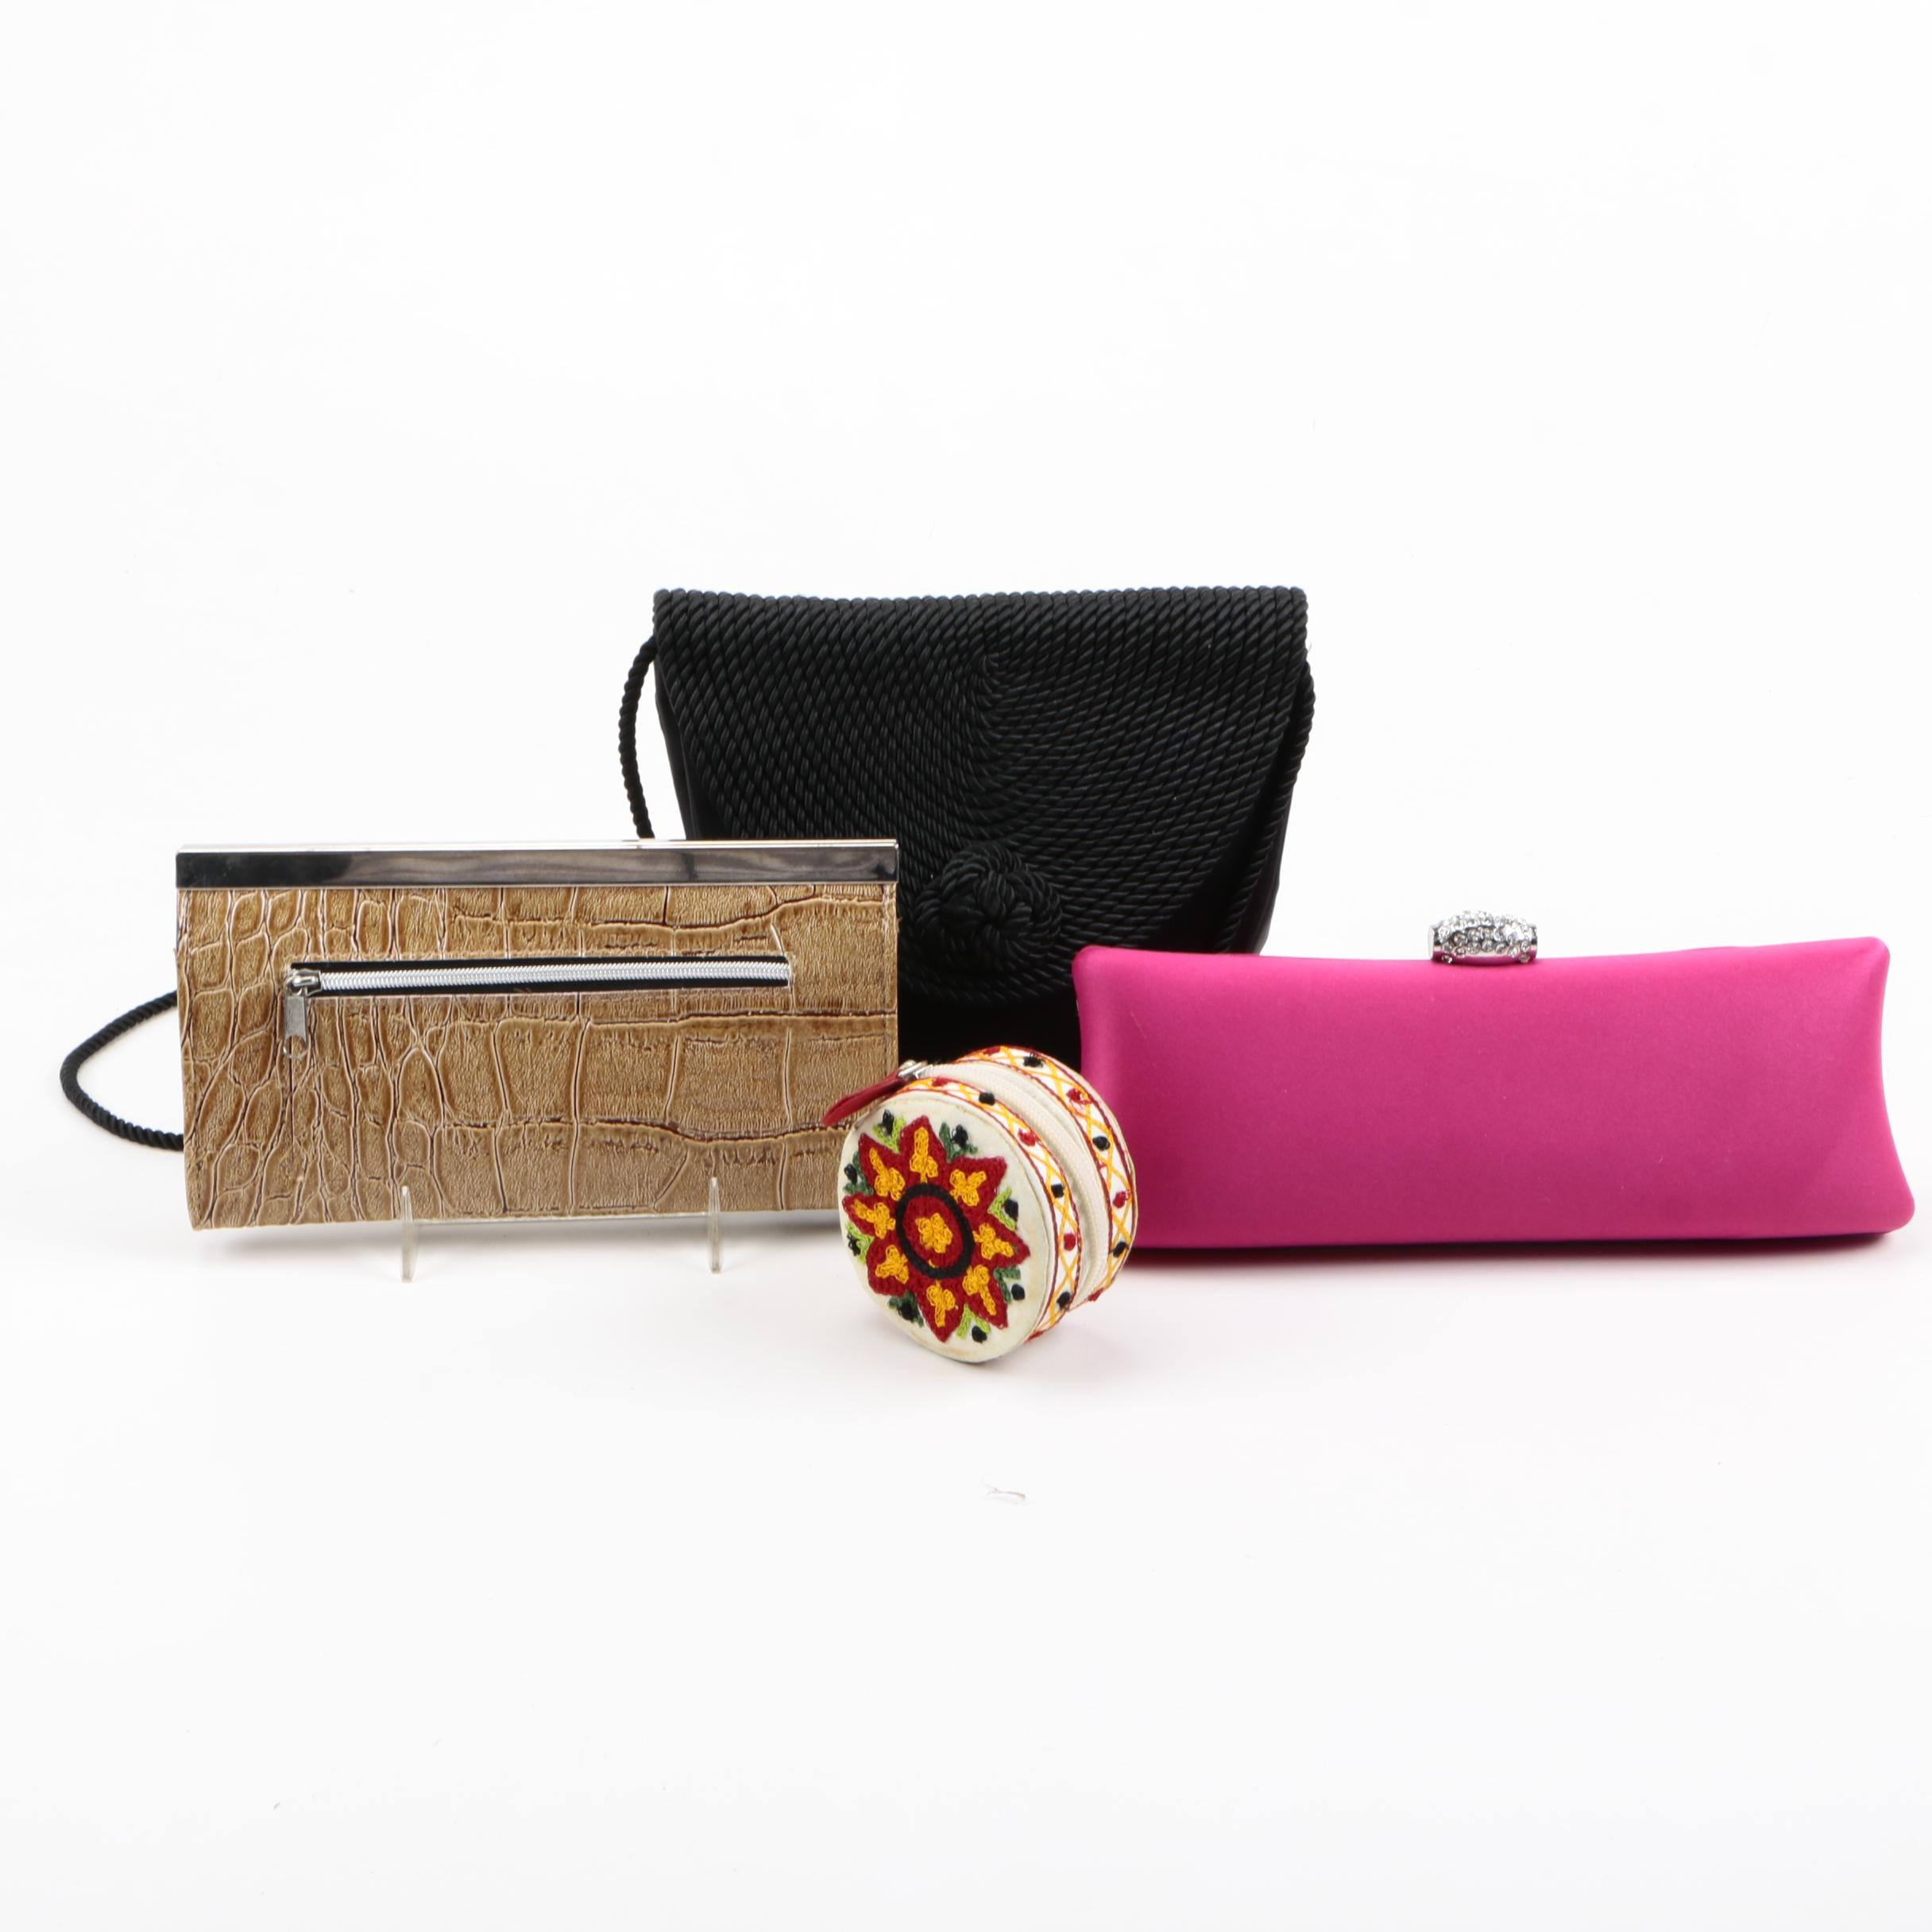 Assortment of Clutches and Coin Purses